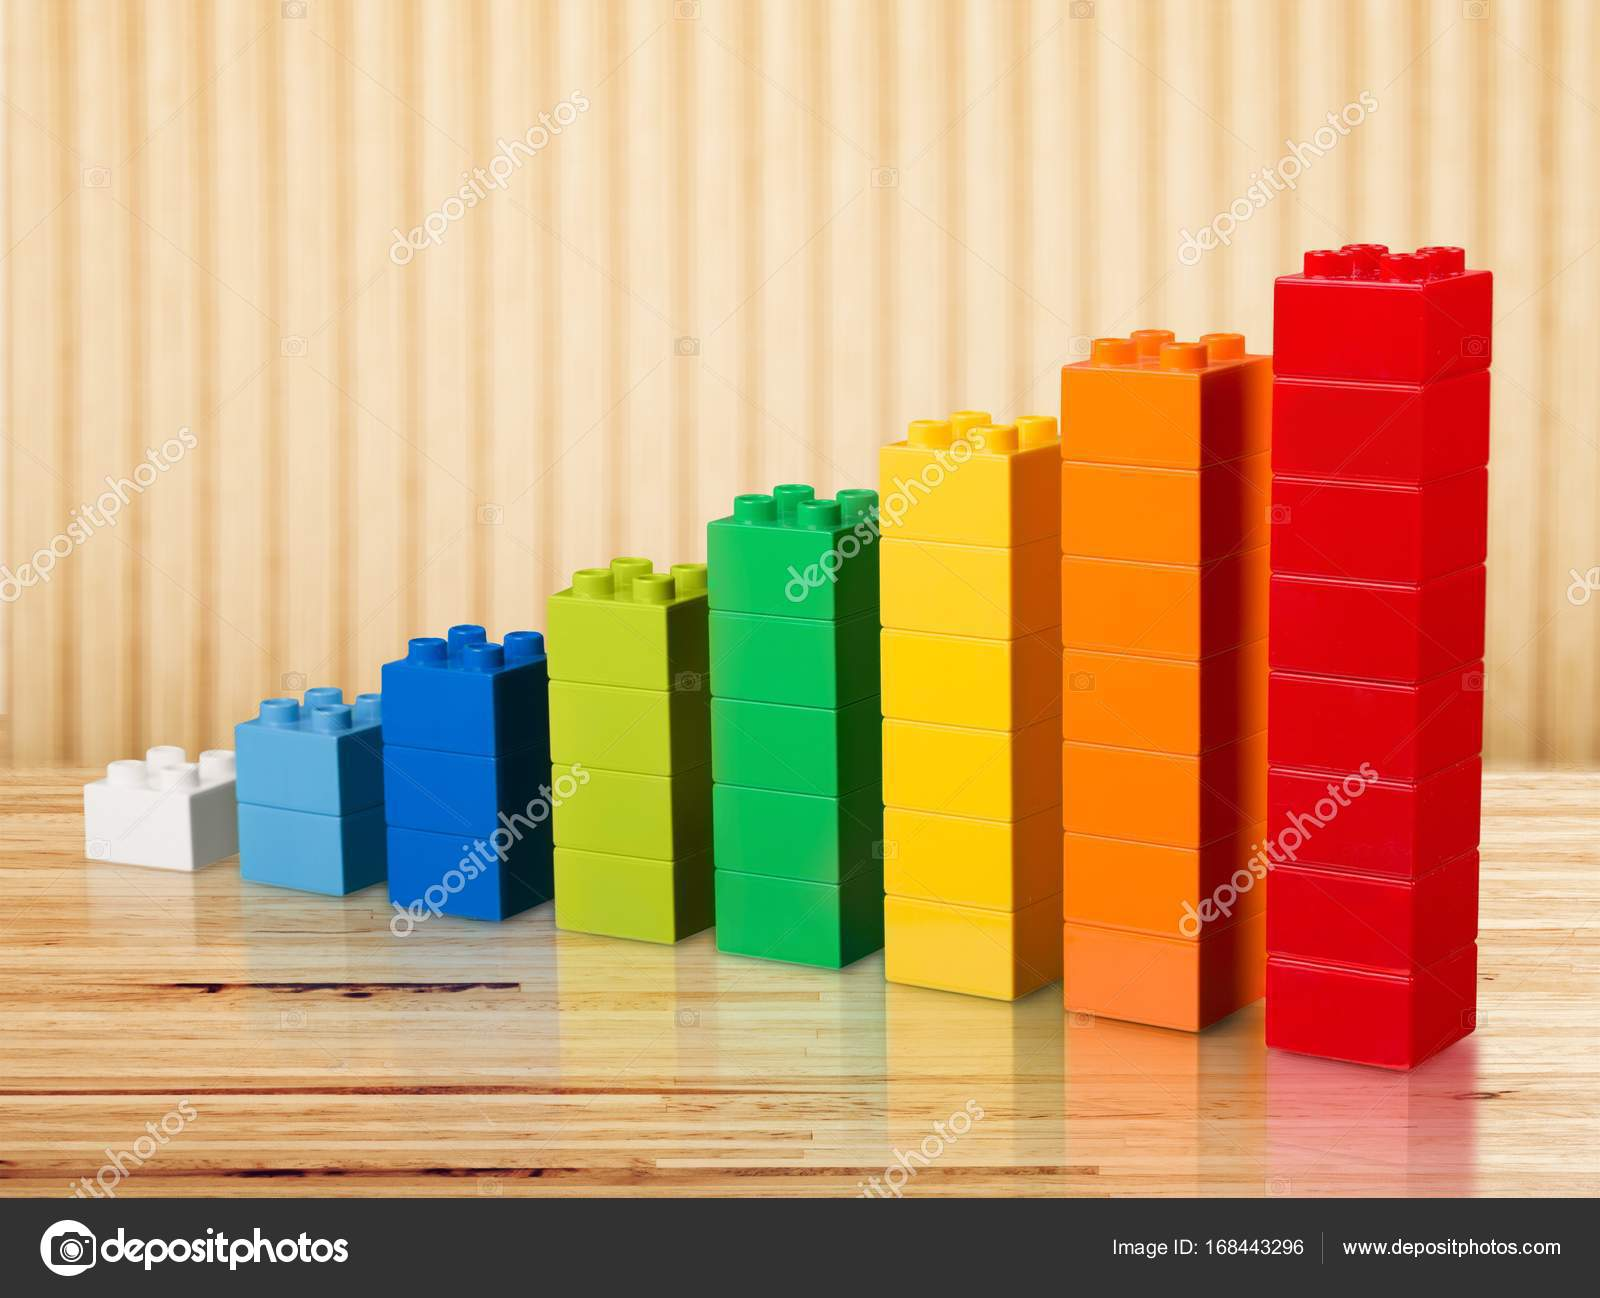 hight resolution of toy blocks increasing graph bar infographic diagram chart stock photo